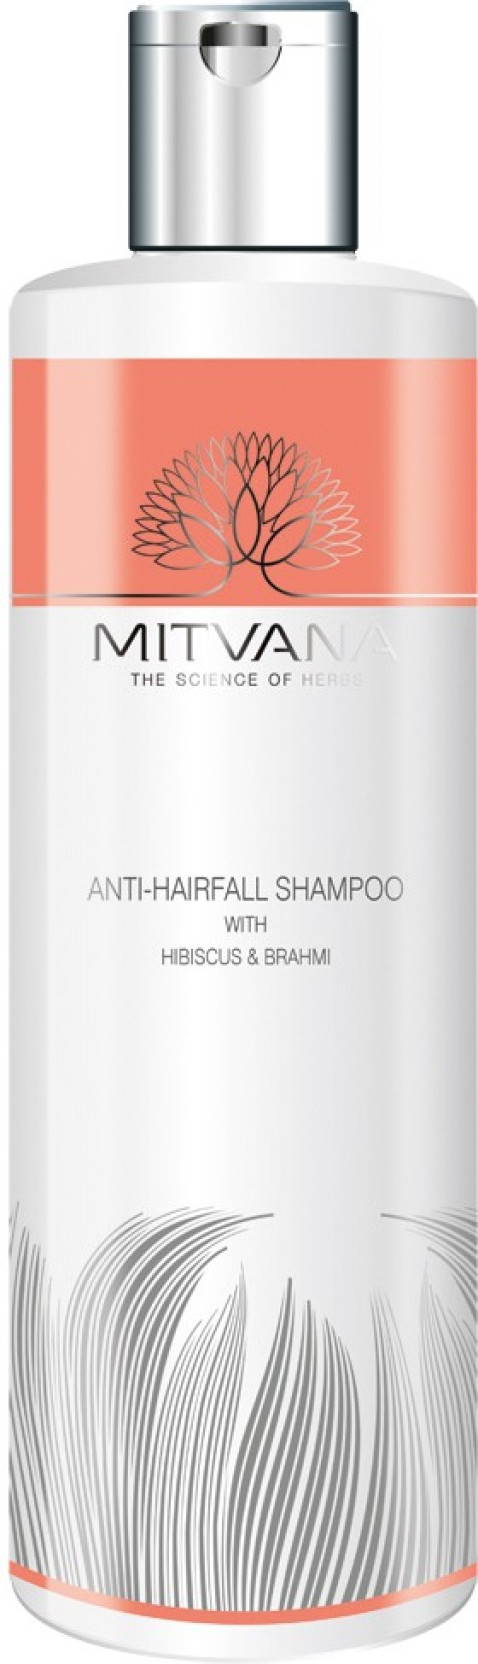 Mitvana Anti Hair Fall Shampoo Image